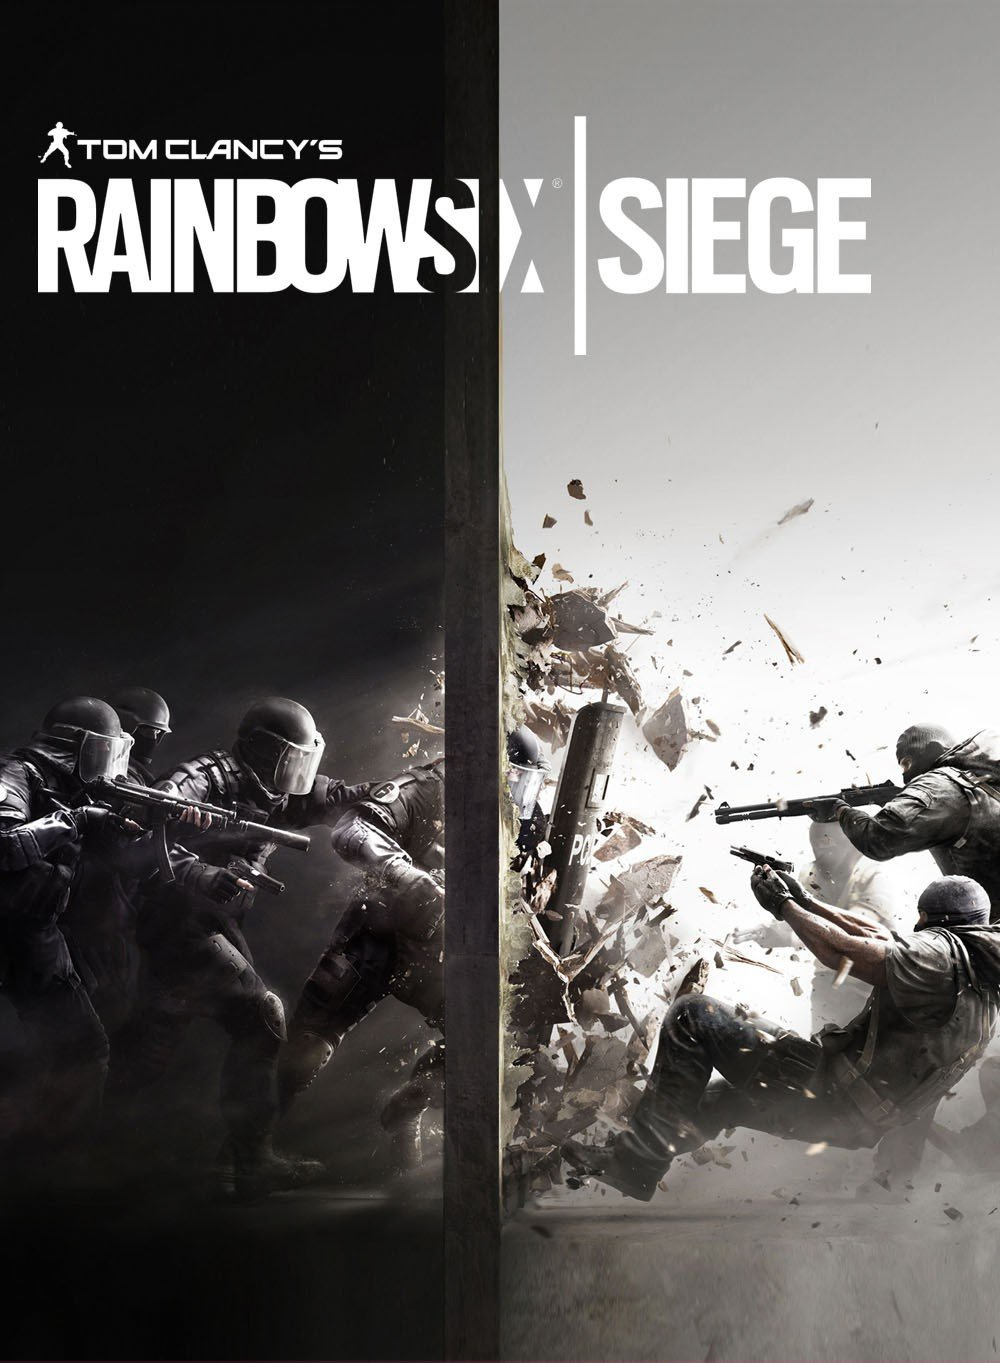 Tom Clancy's Rainbow Six Siege 彩虹六号:围攻